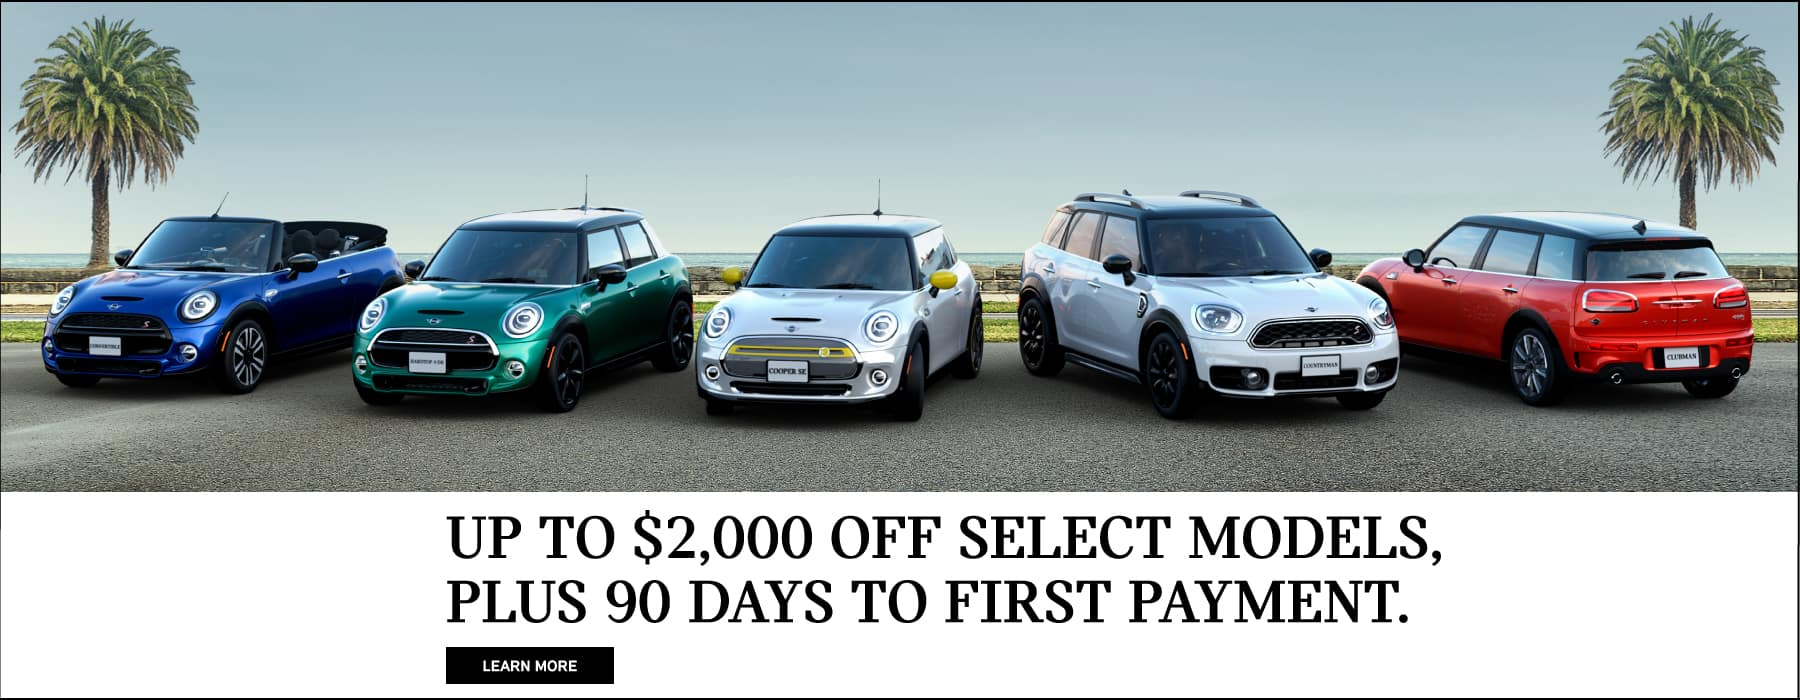 UP TO $2,000 OFF SELECT MODELS, PLUS 90 DAYS TO FIRST PAYMENT